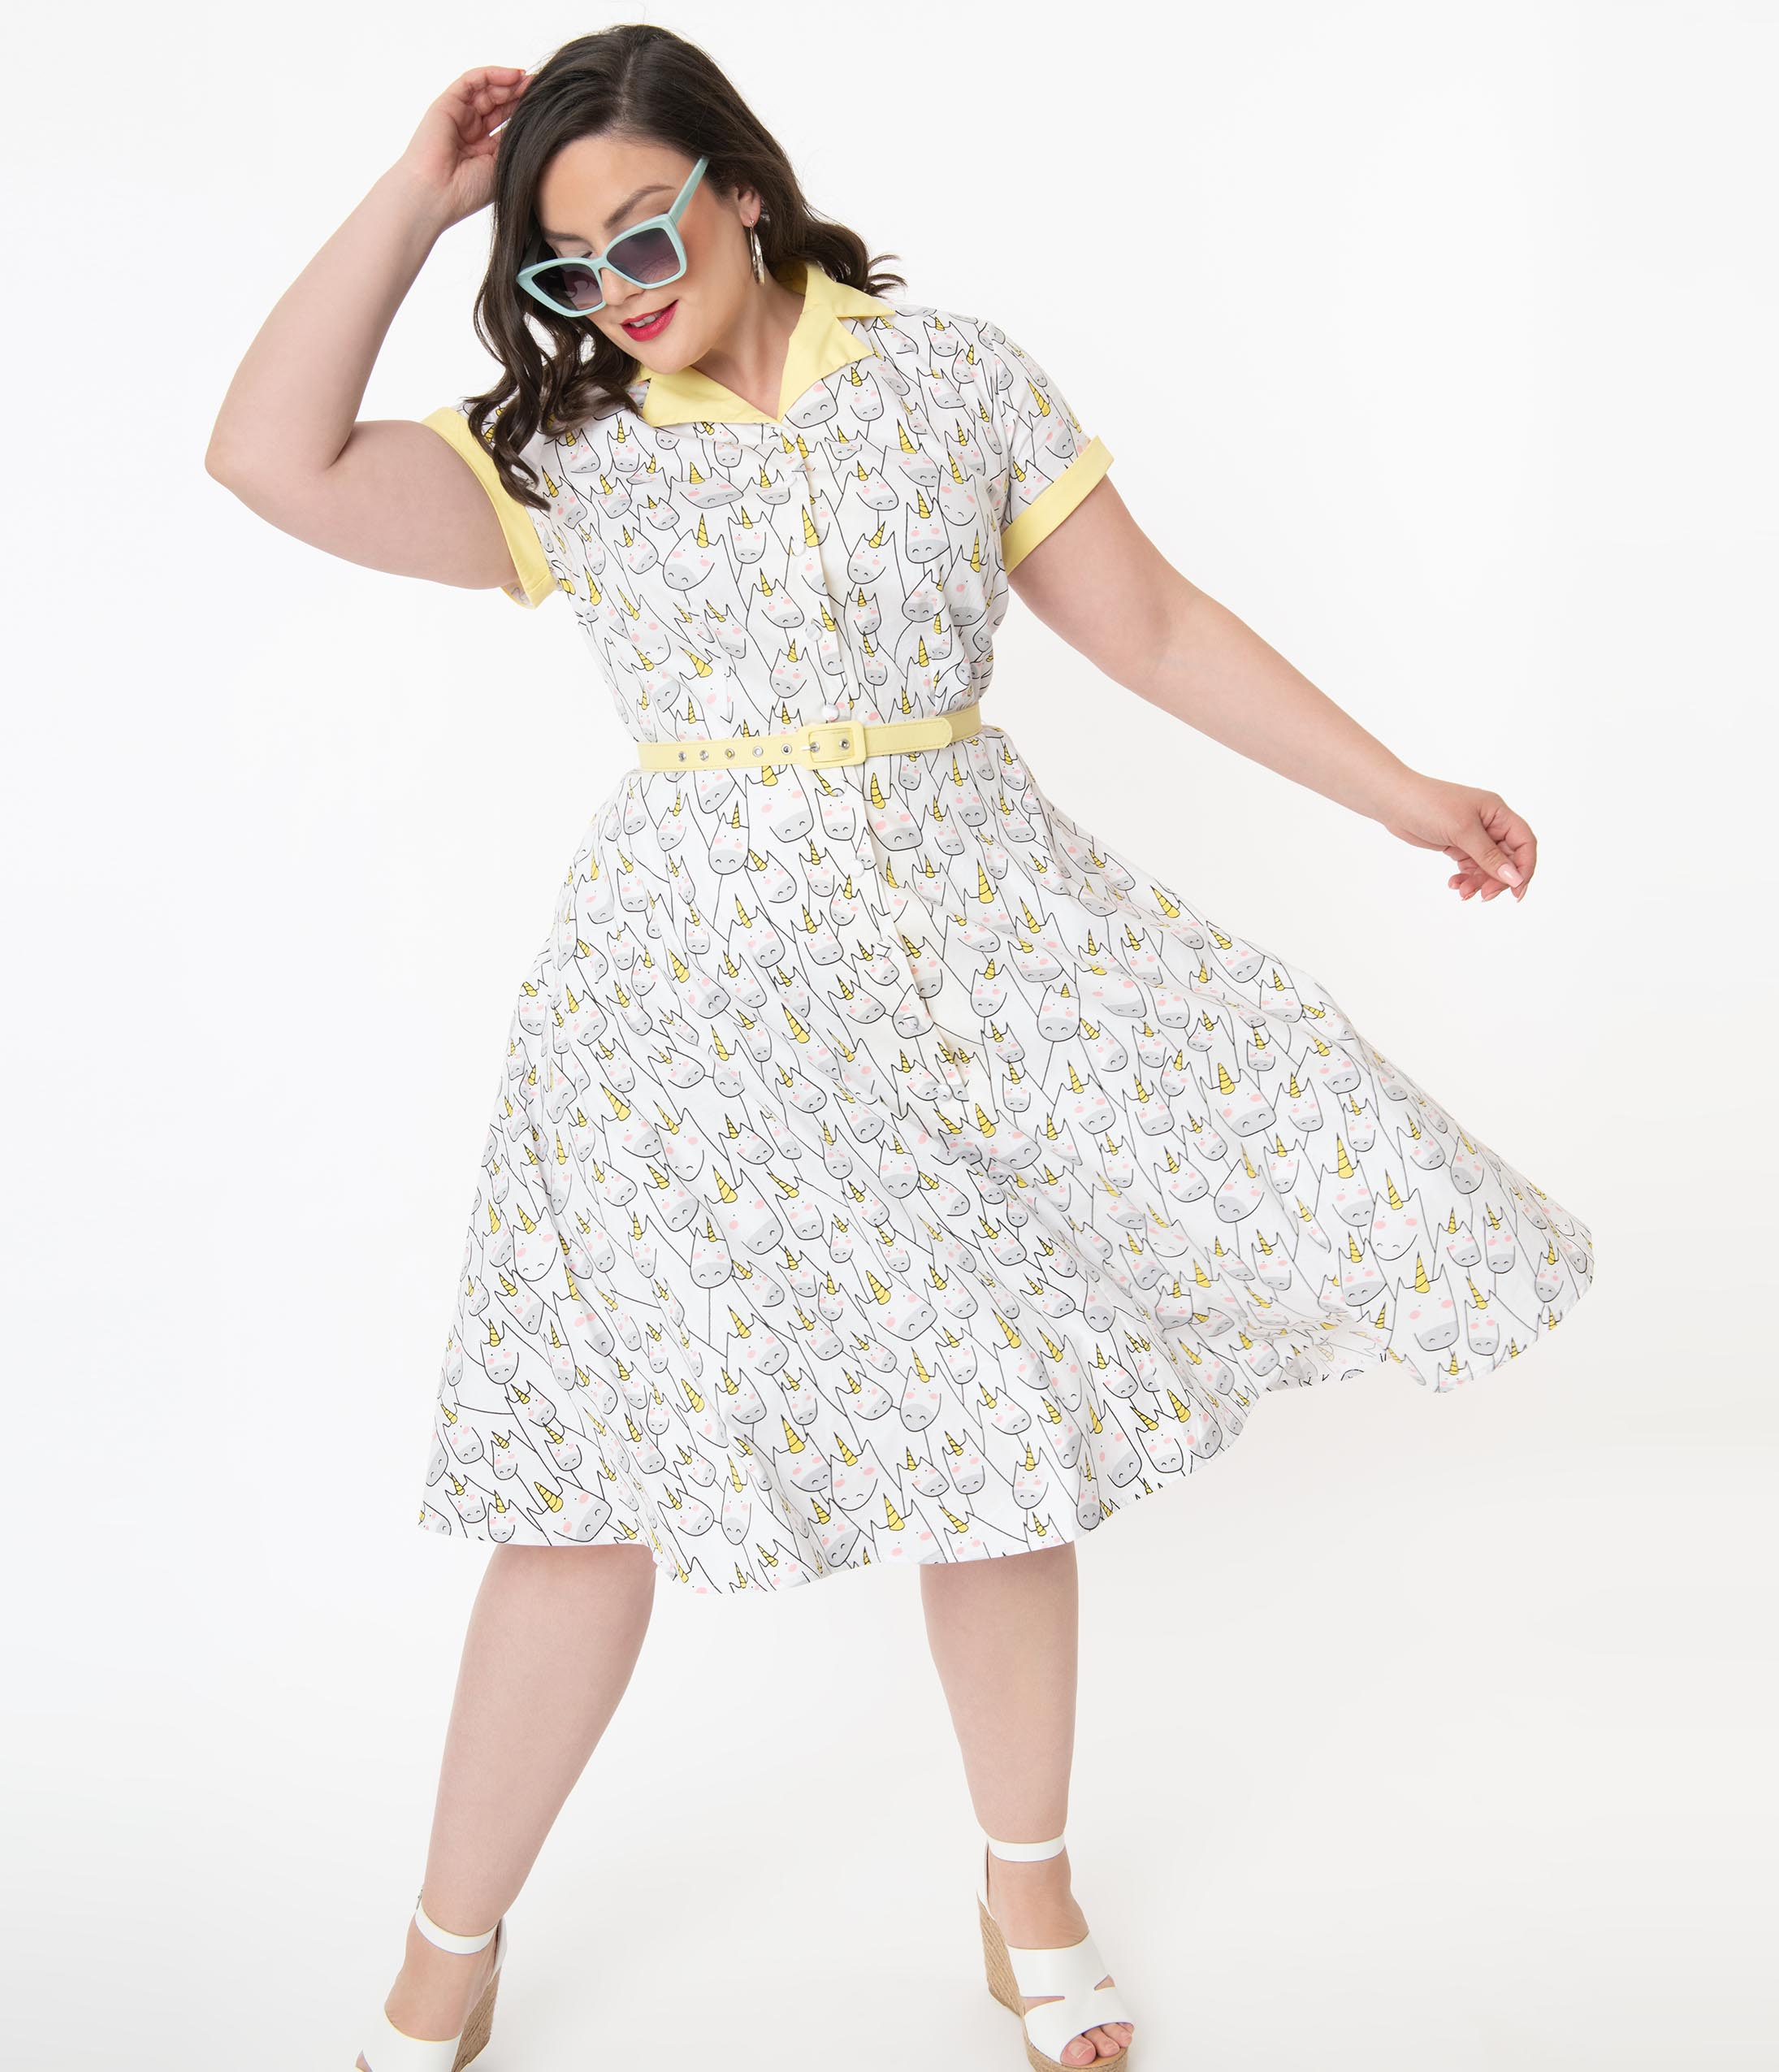 1950s Plus Size Dresses, Swing Dresses Unique Vintage Plus Size Unicorn Doodle Print Alexis Swing Dress $78.00 AT vintagedancer.com